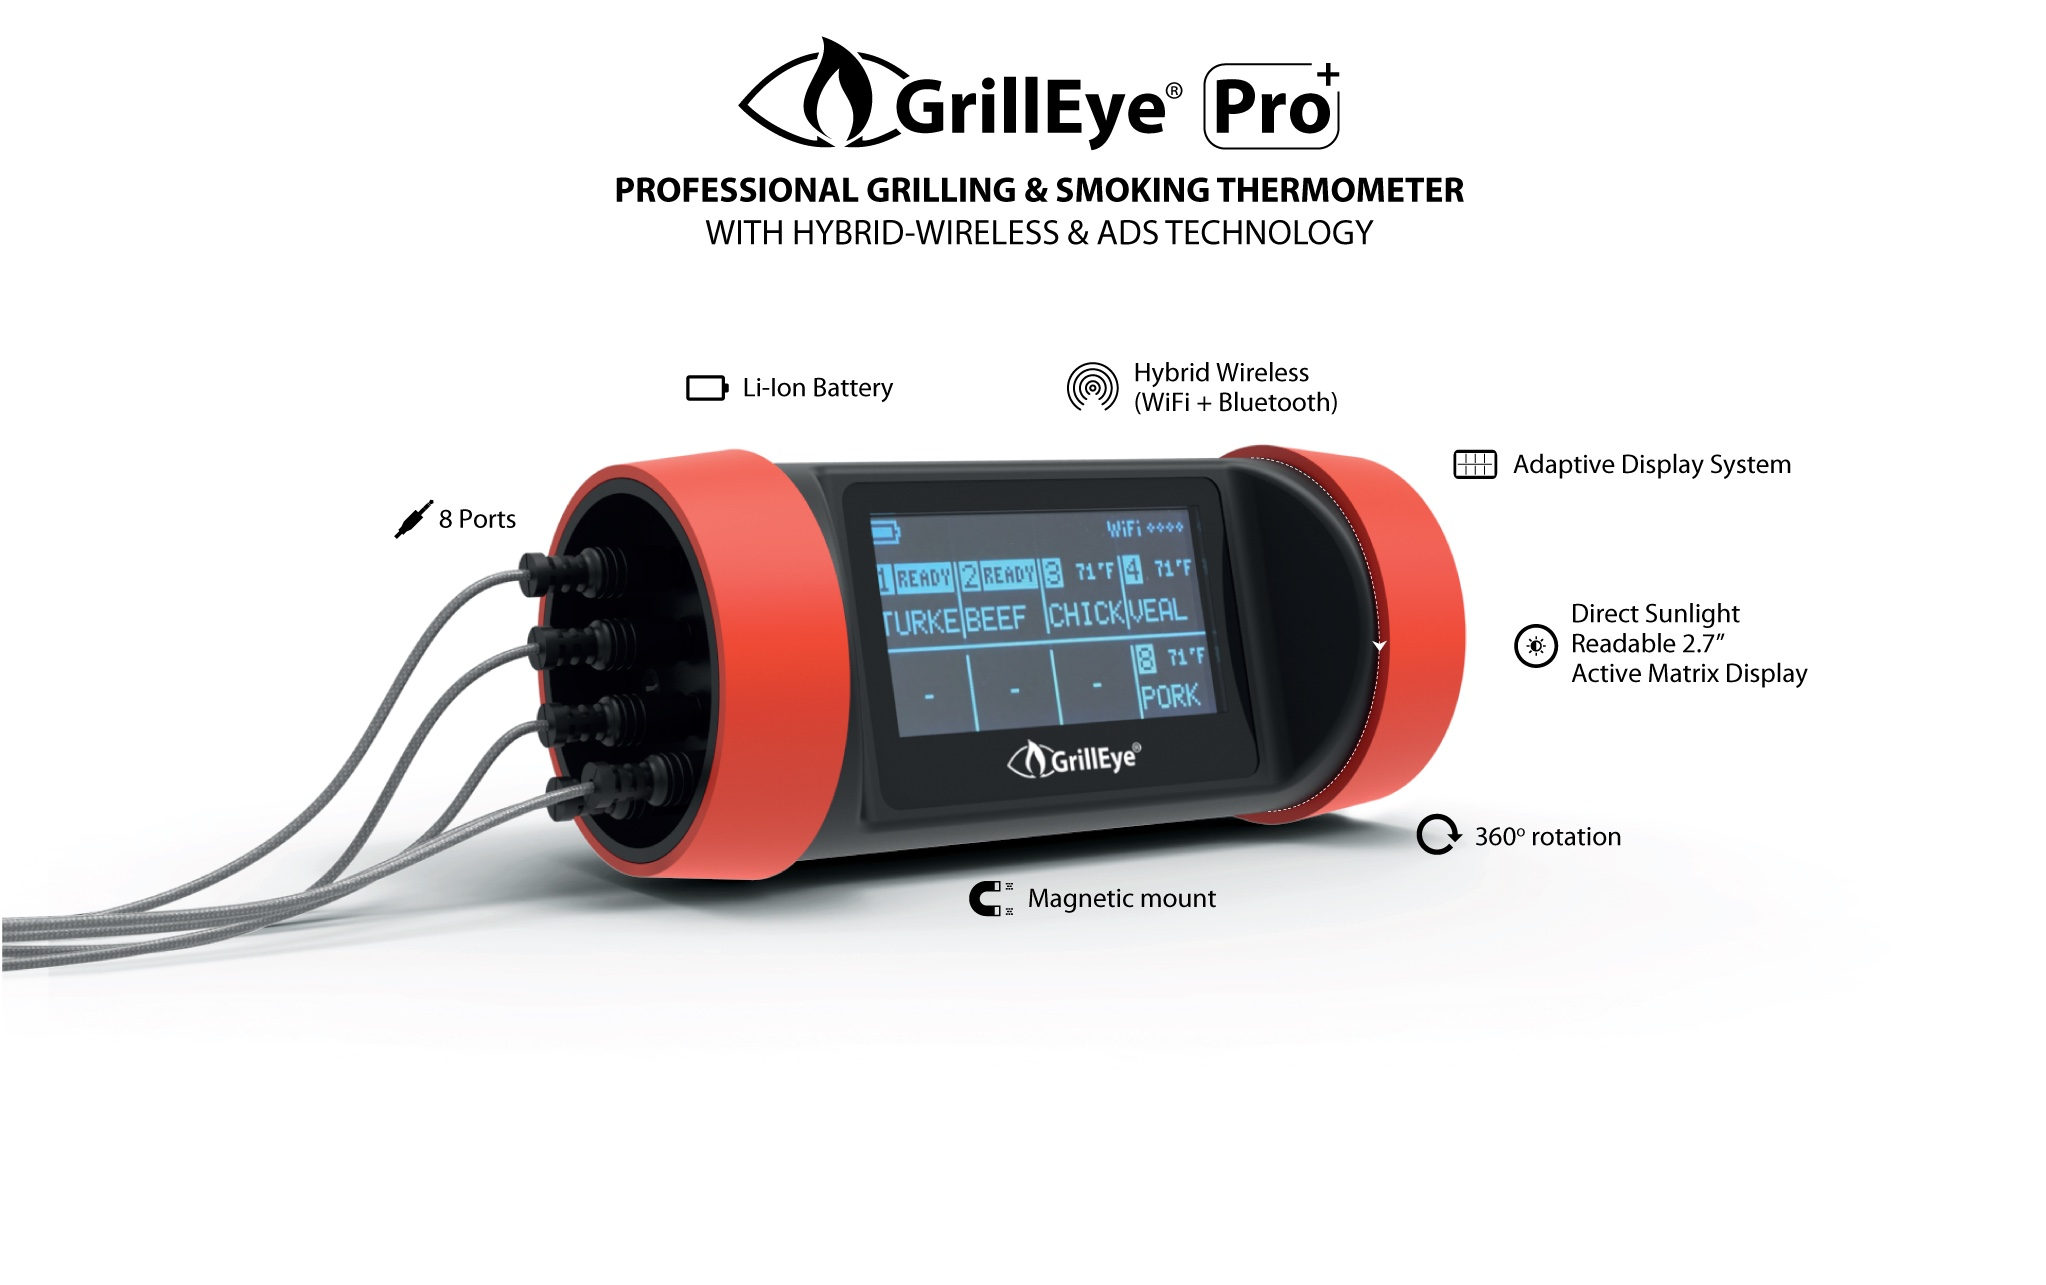 GrillEye Pro Plus - Proffessional Grilling & Smoking Thermometer with Hybrid Wireless & ADS Technology